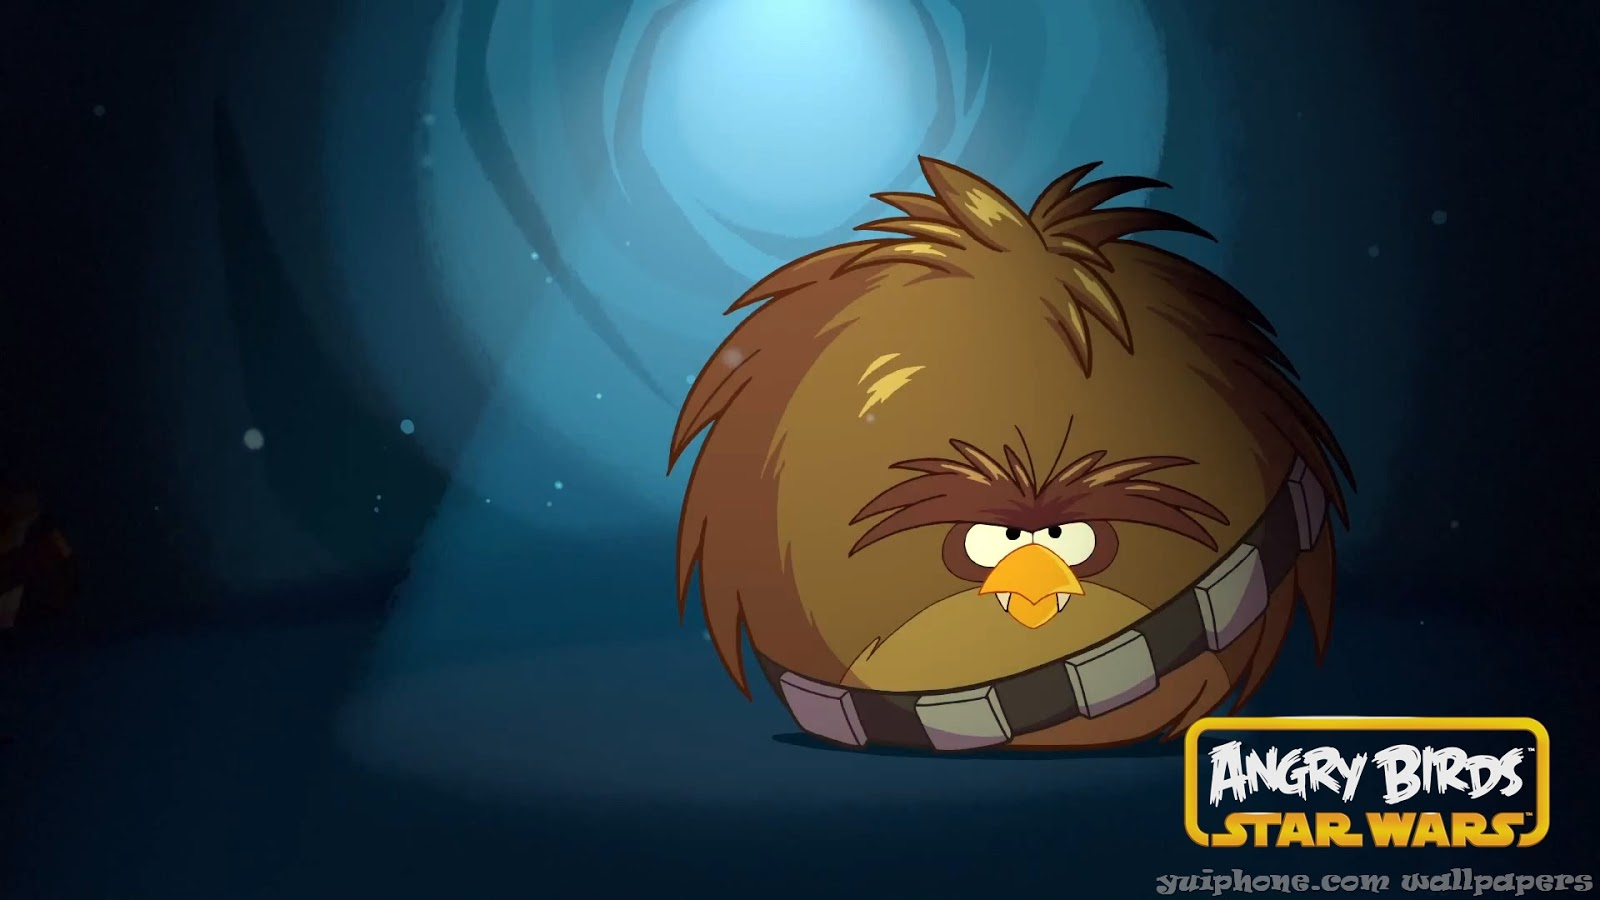 ANGRY BIRDS WALLPAPERS HD 1600x900